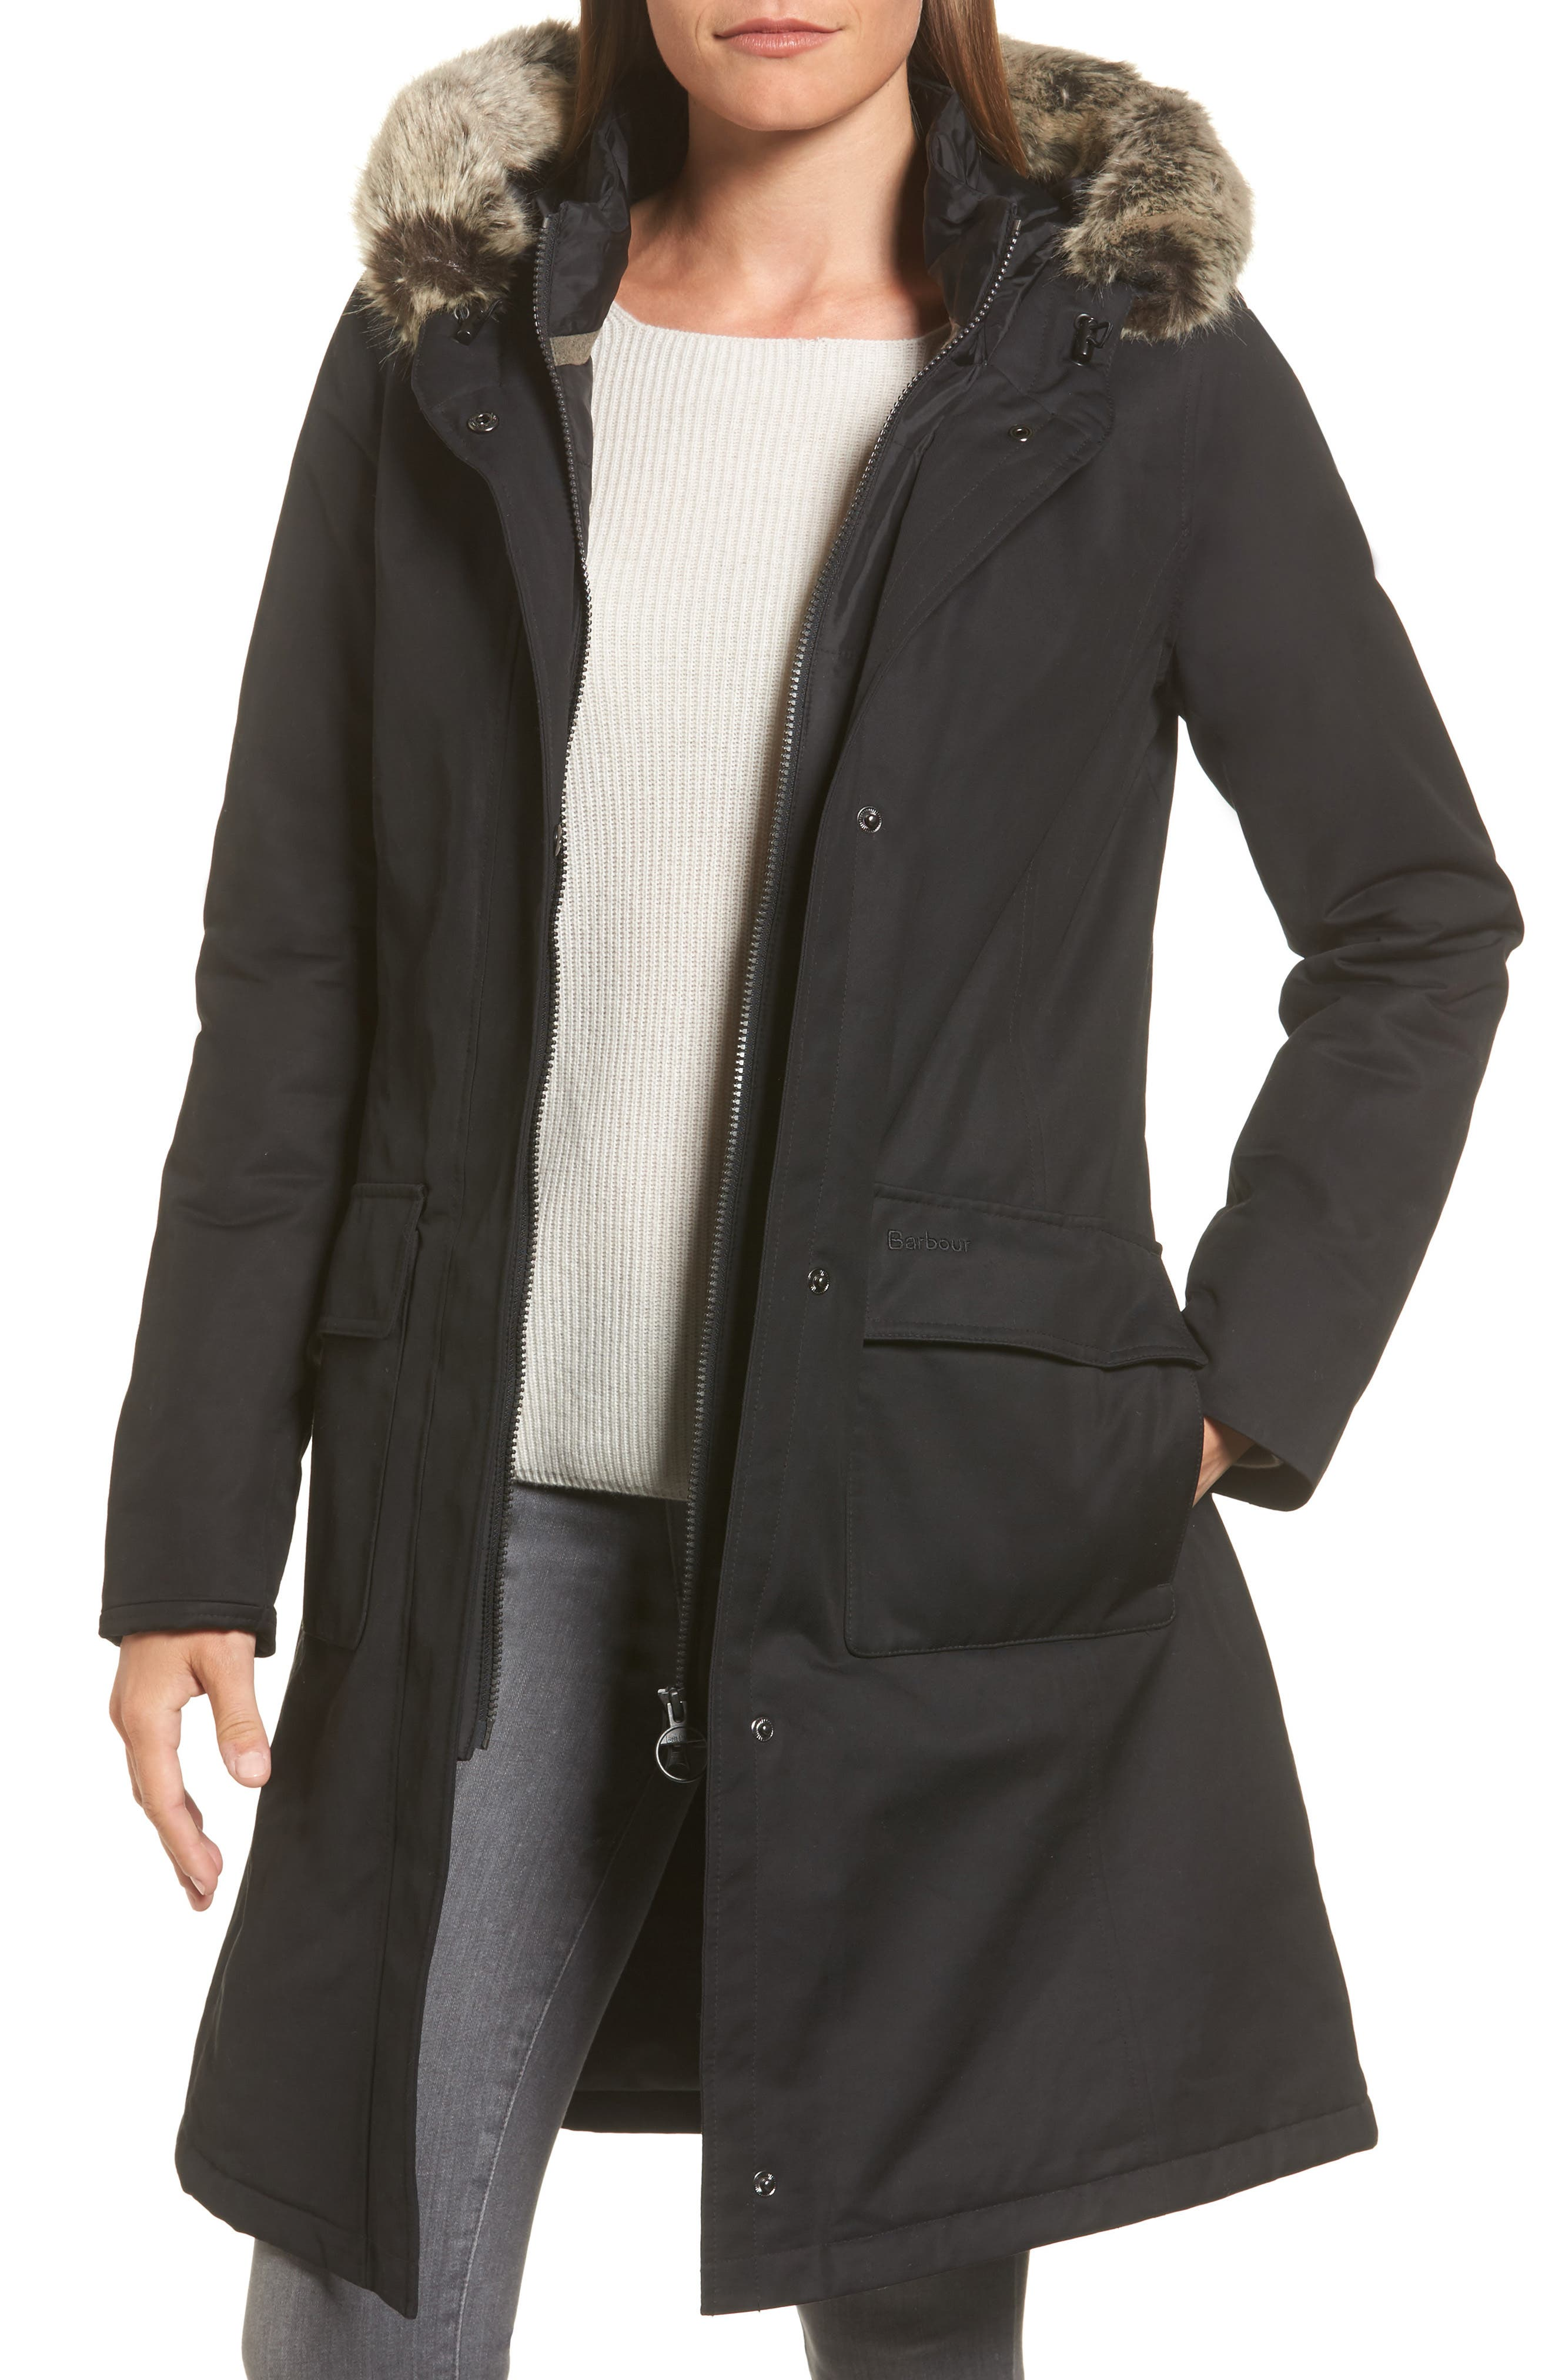 Linton Hooded Waterproof Jacket with Faux Fur Trim,                         Main,                         color, 001